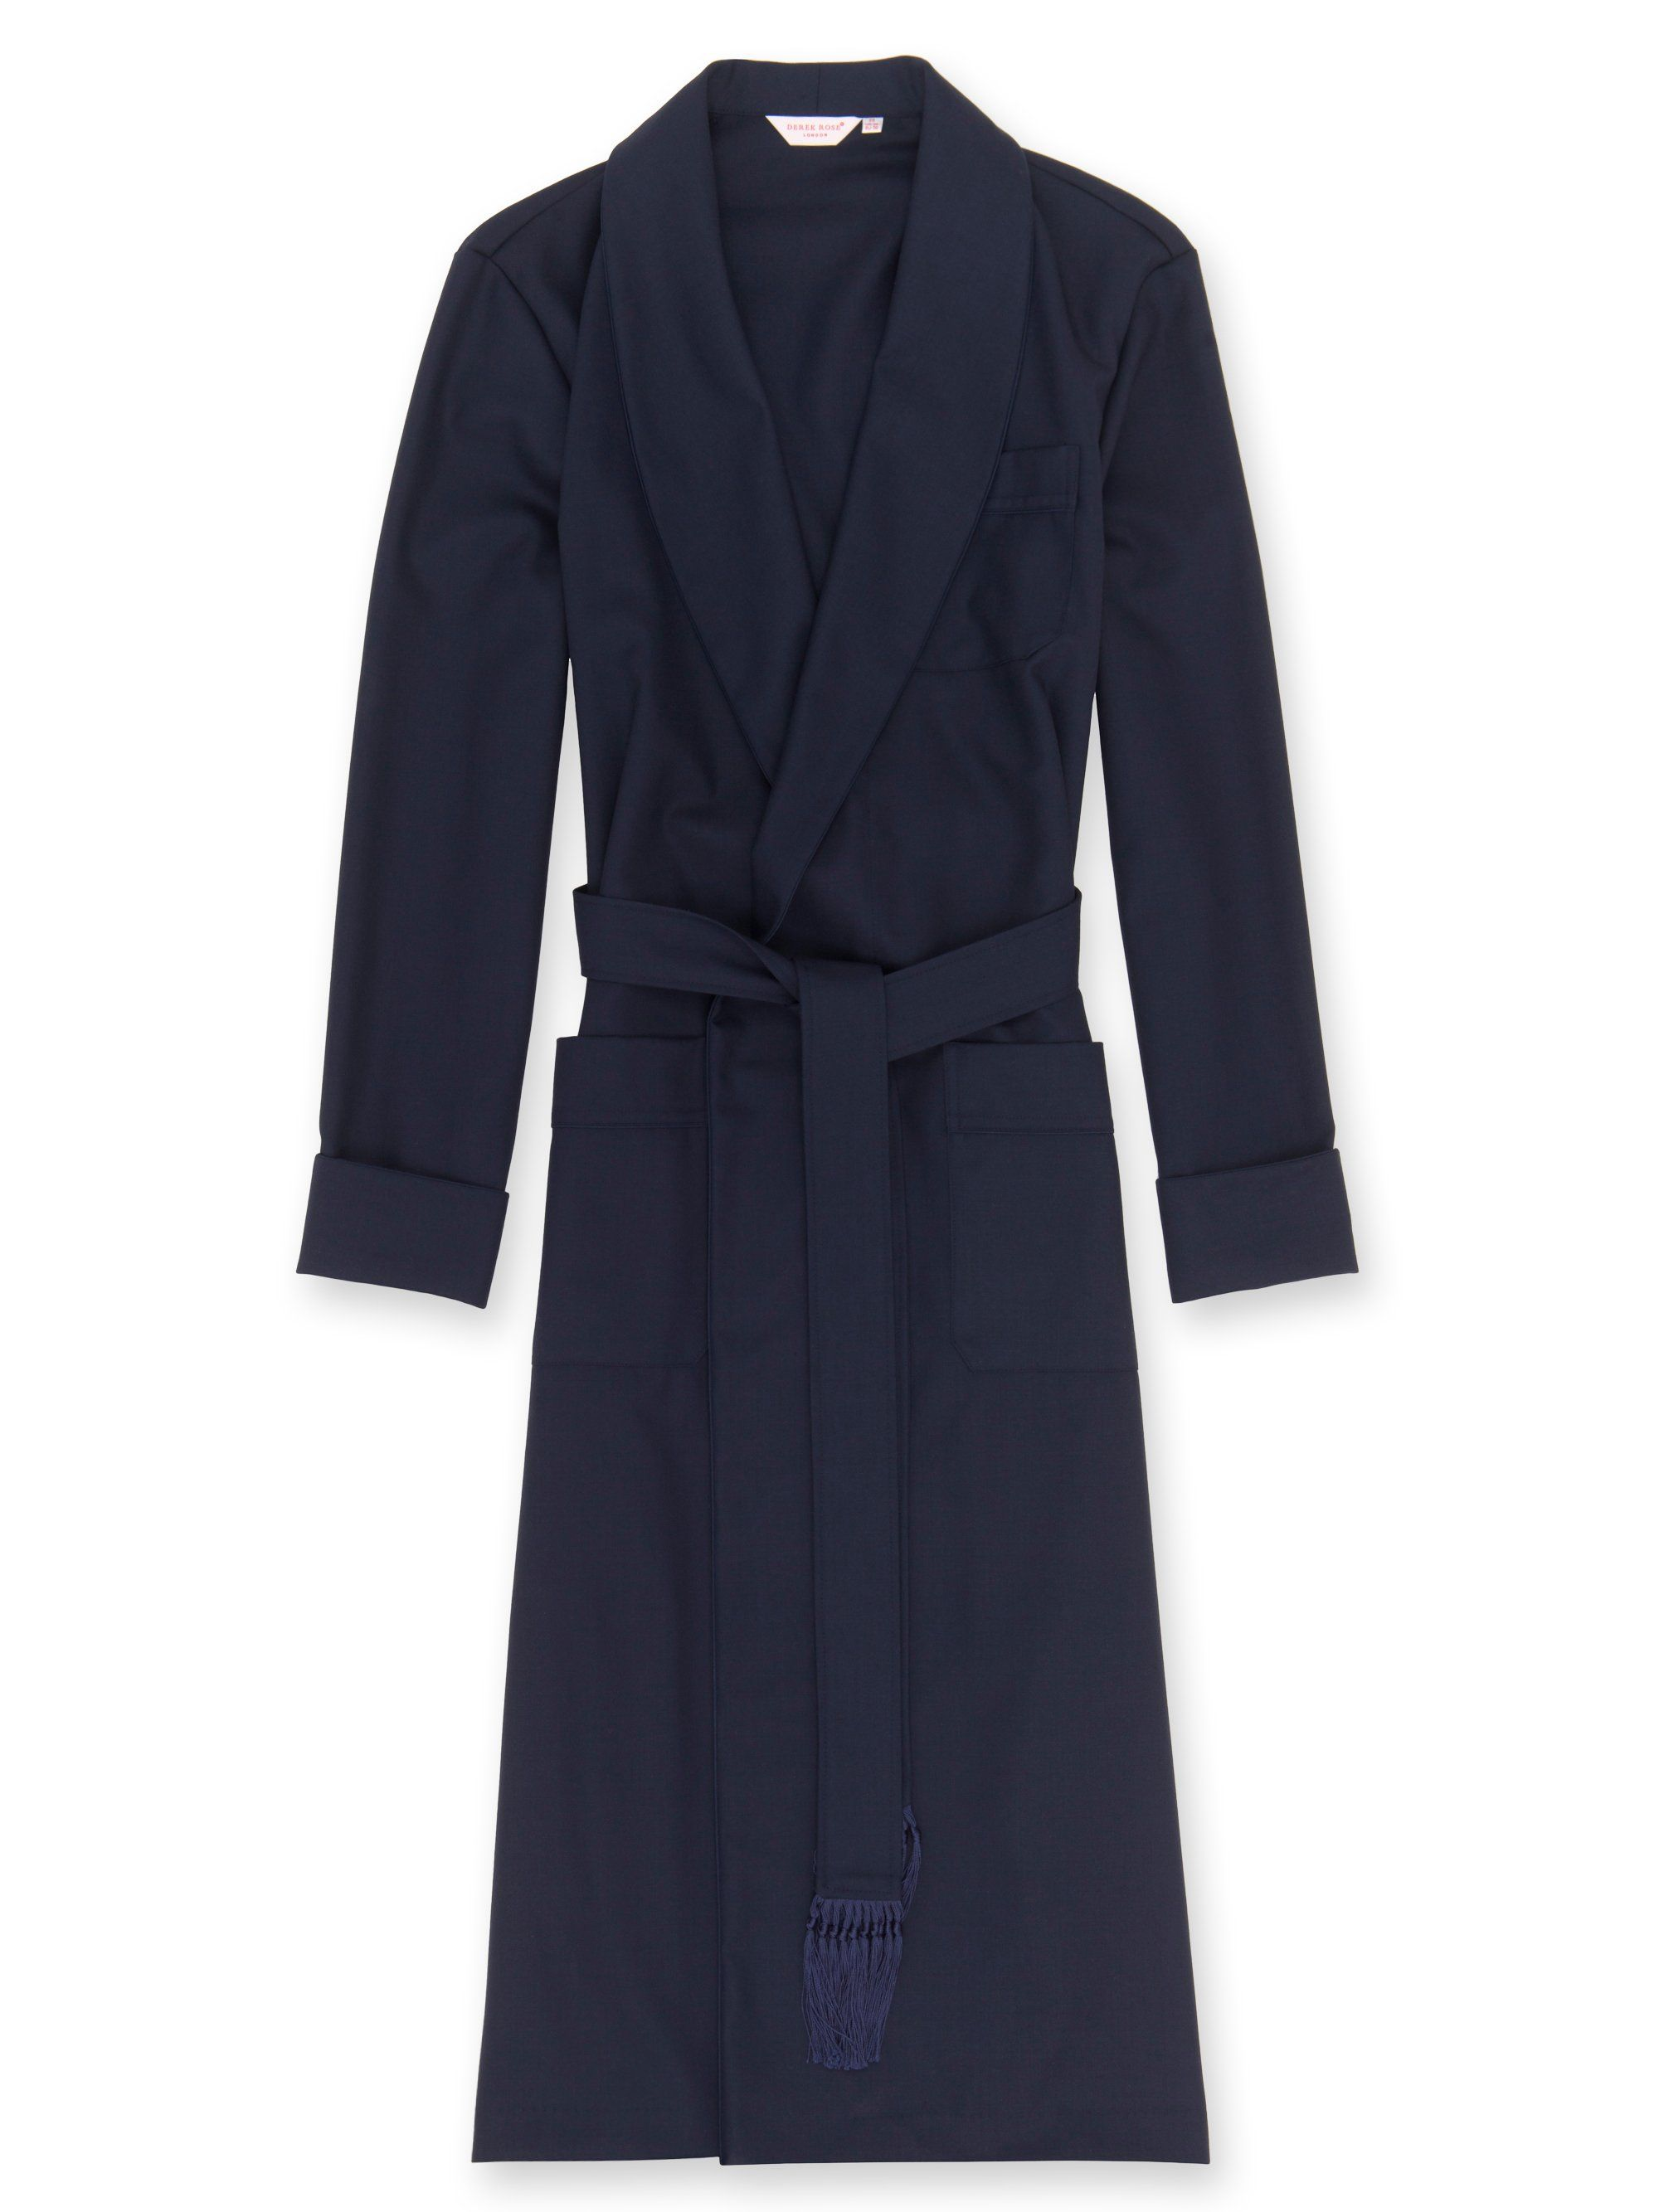 Buy Our Mens Dressing Gowns Online From Derek Rose, Including Mens ...